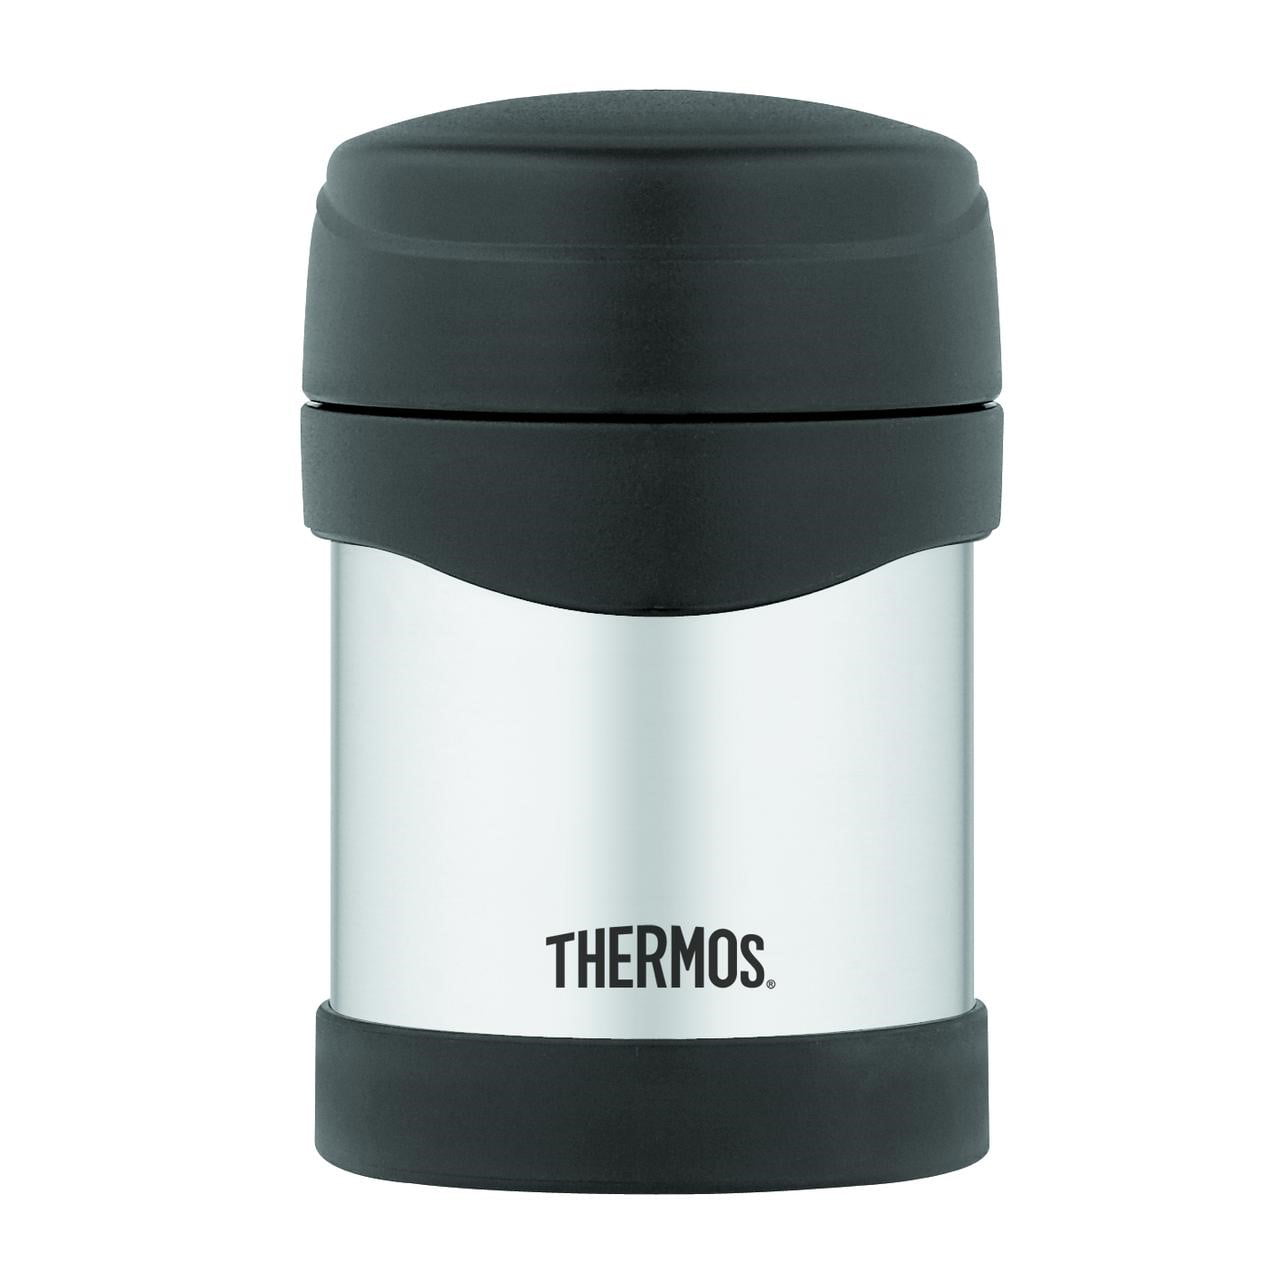 Thermos Arctic: customer reviews 73